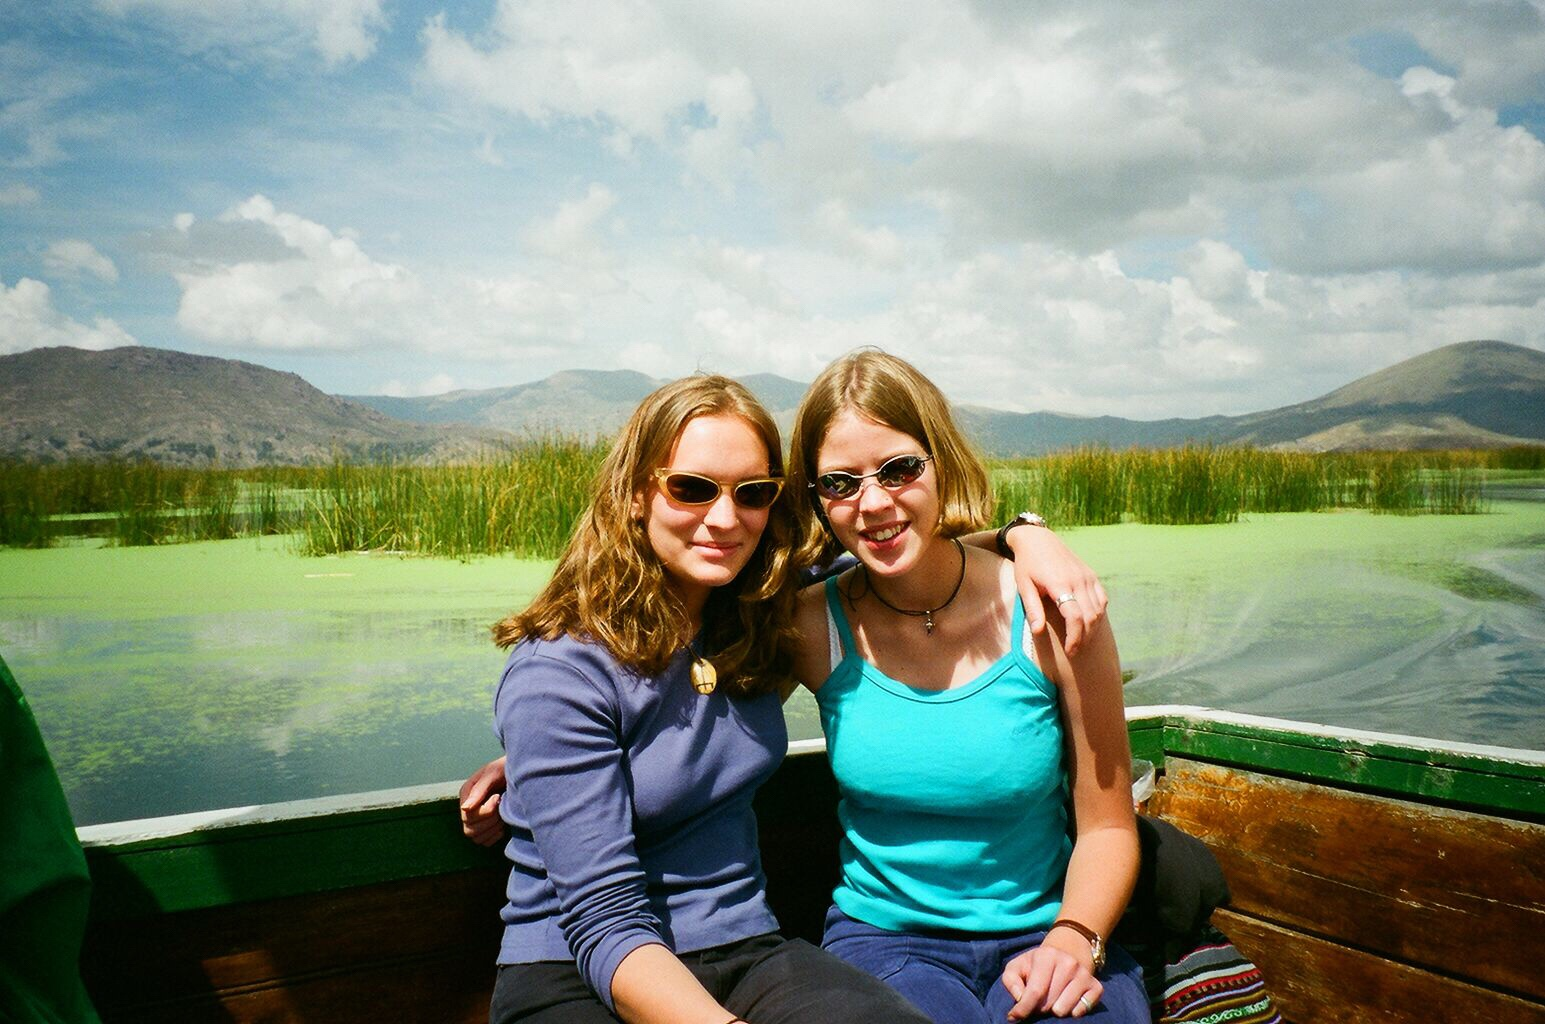 Me and my friend on a boat in Lake Titicaca